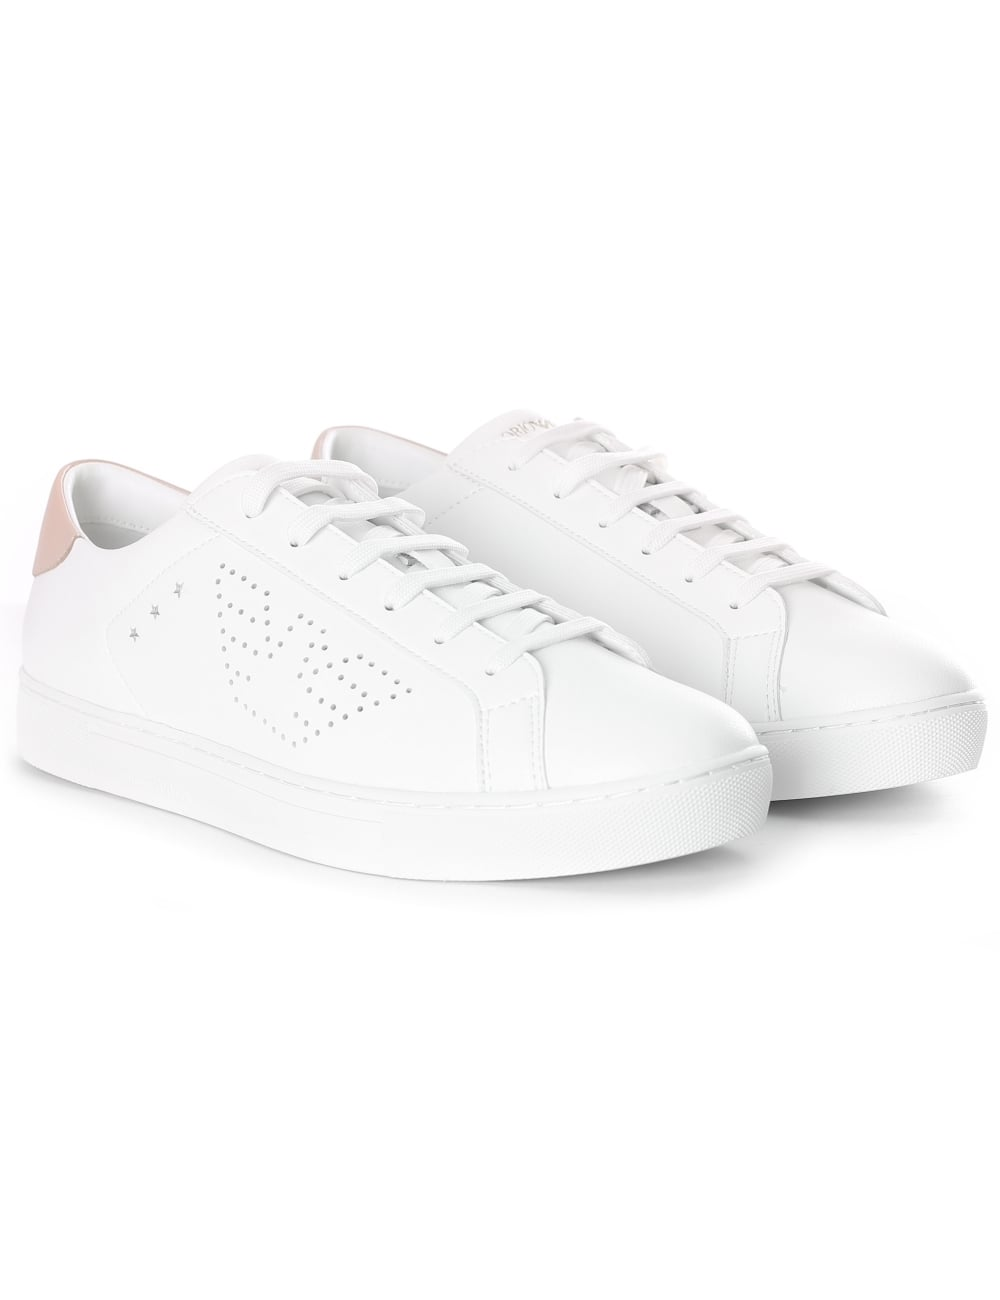 7a138e99 Emporio Armani Women's Perforated Eagle Logo Trainer